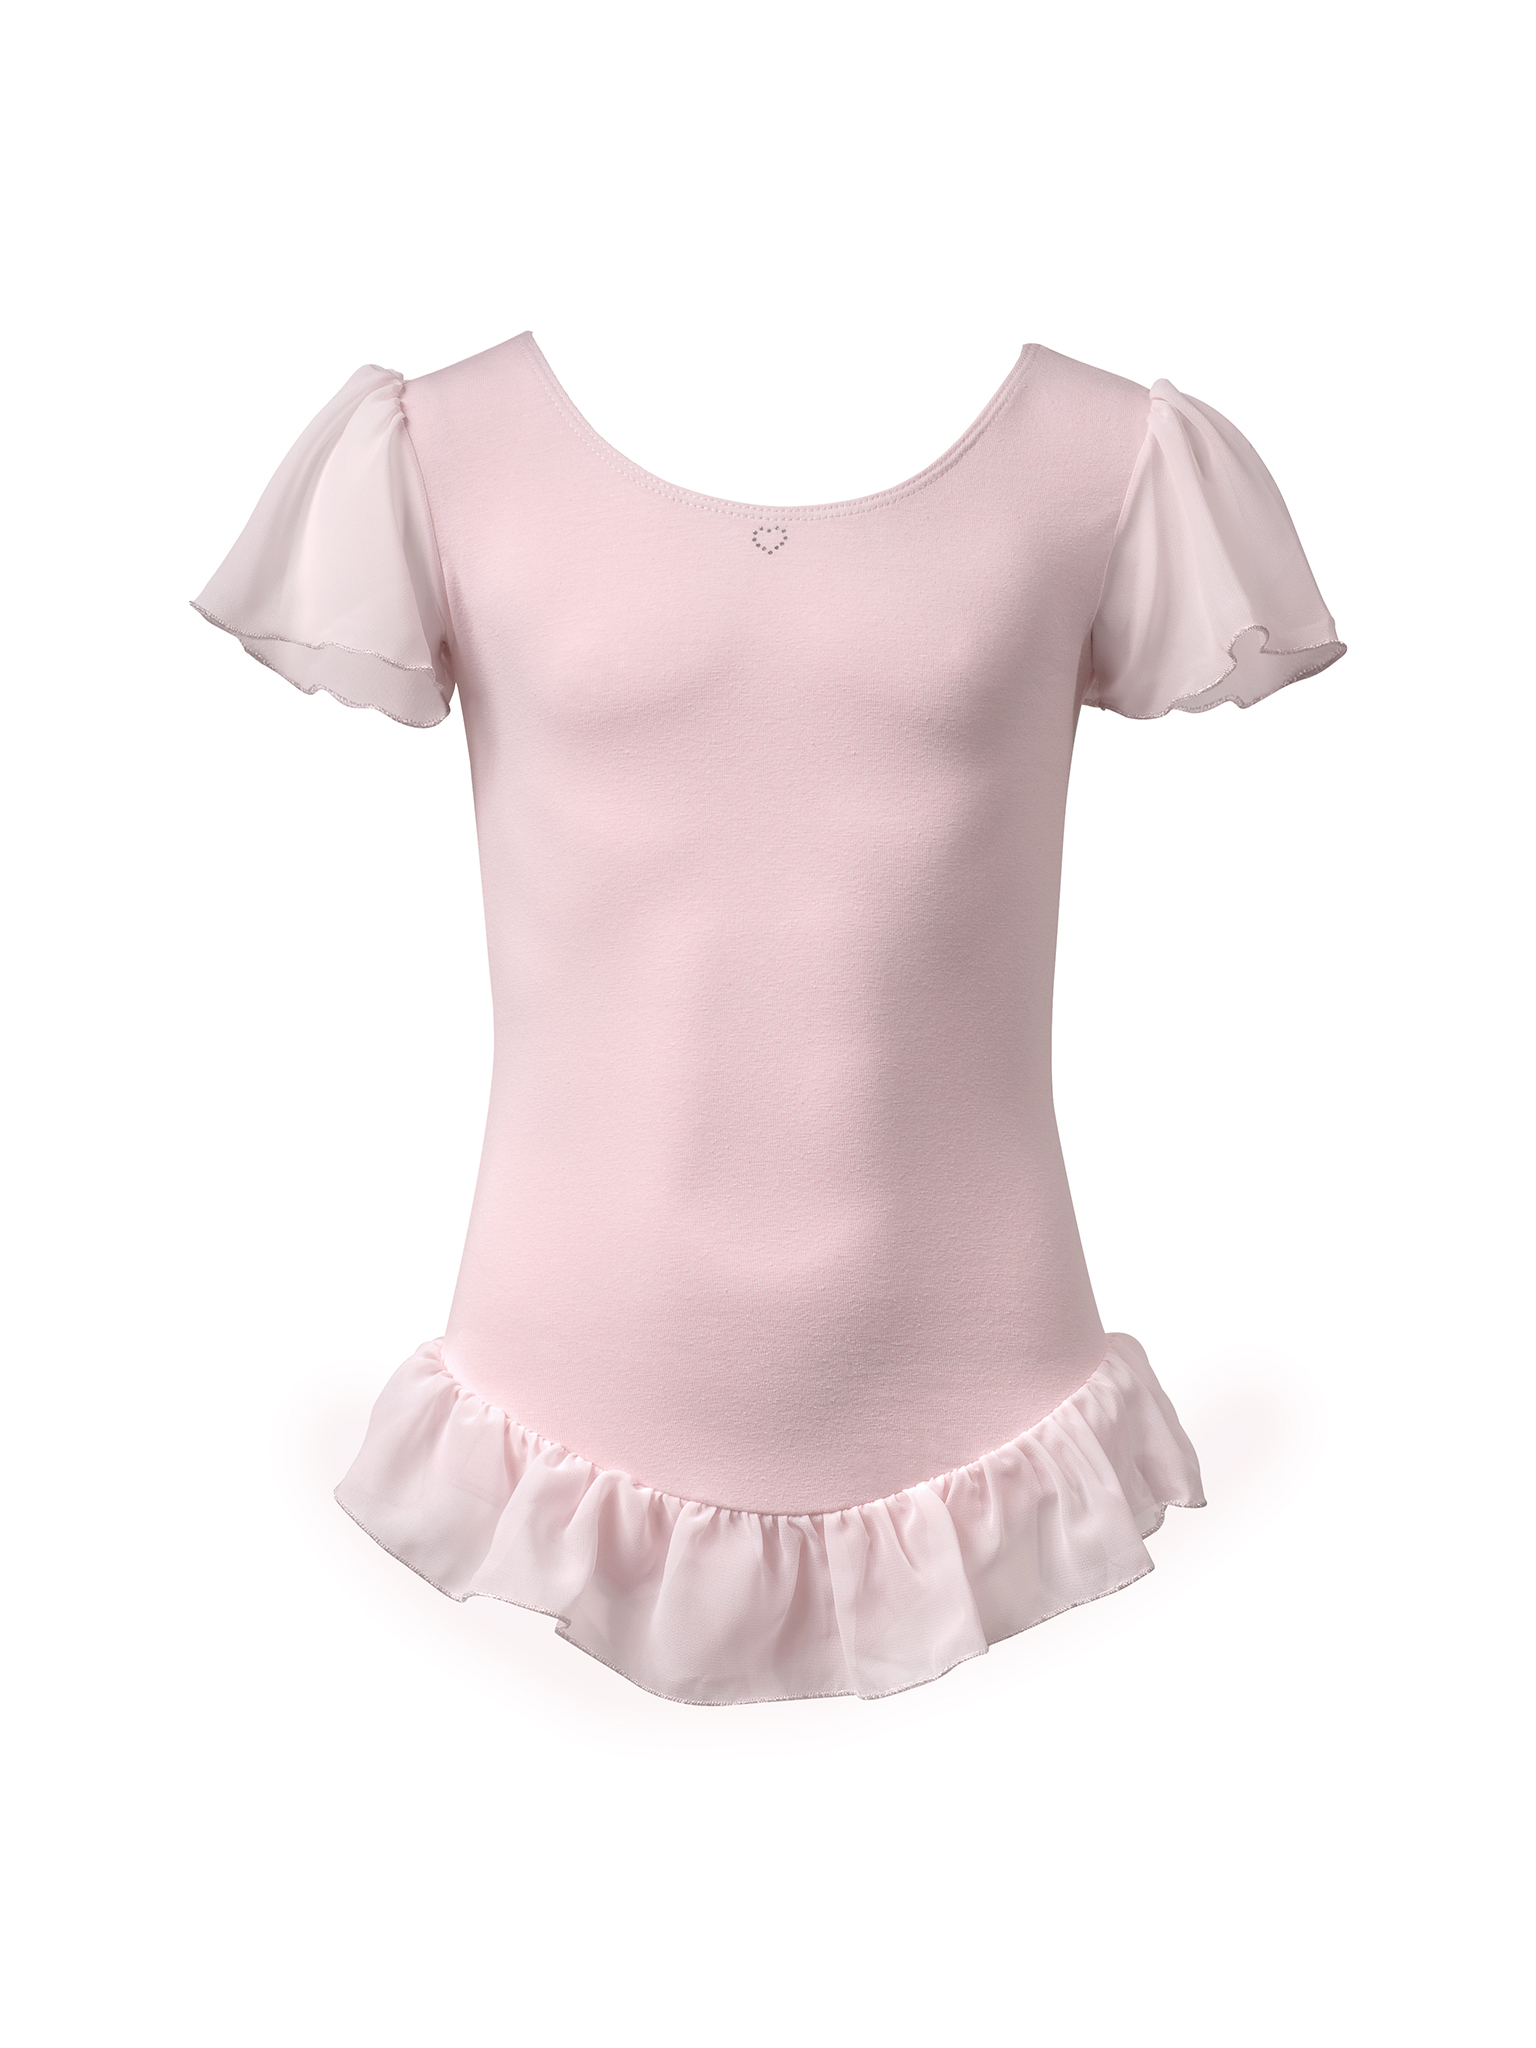 Image of   Papillon Leotard voile frill little heart cotton Girls - Pink - 12